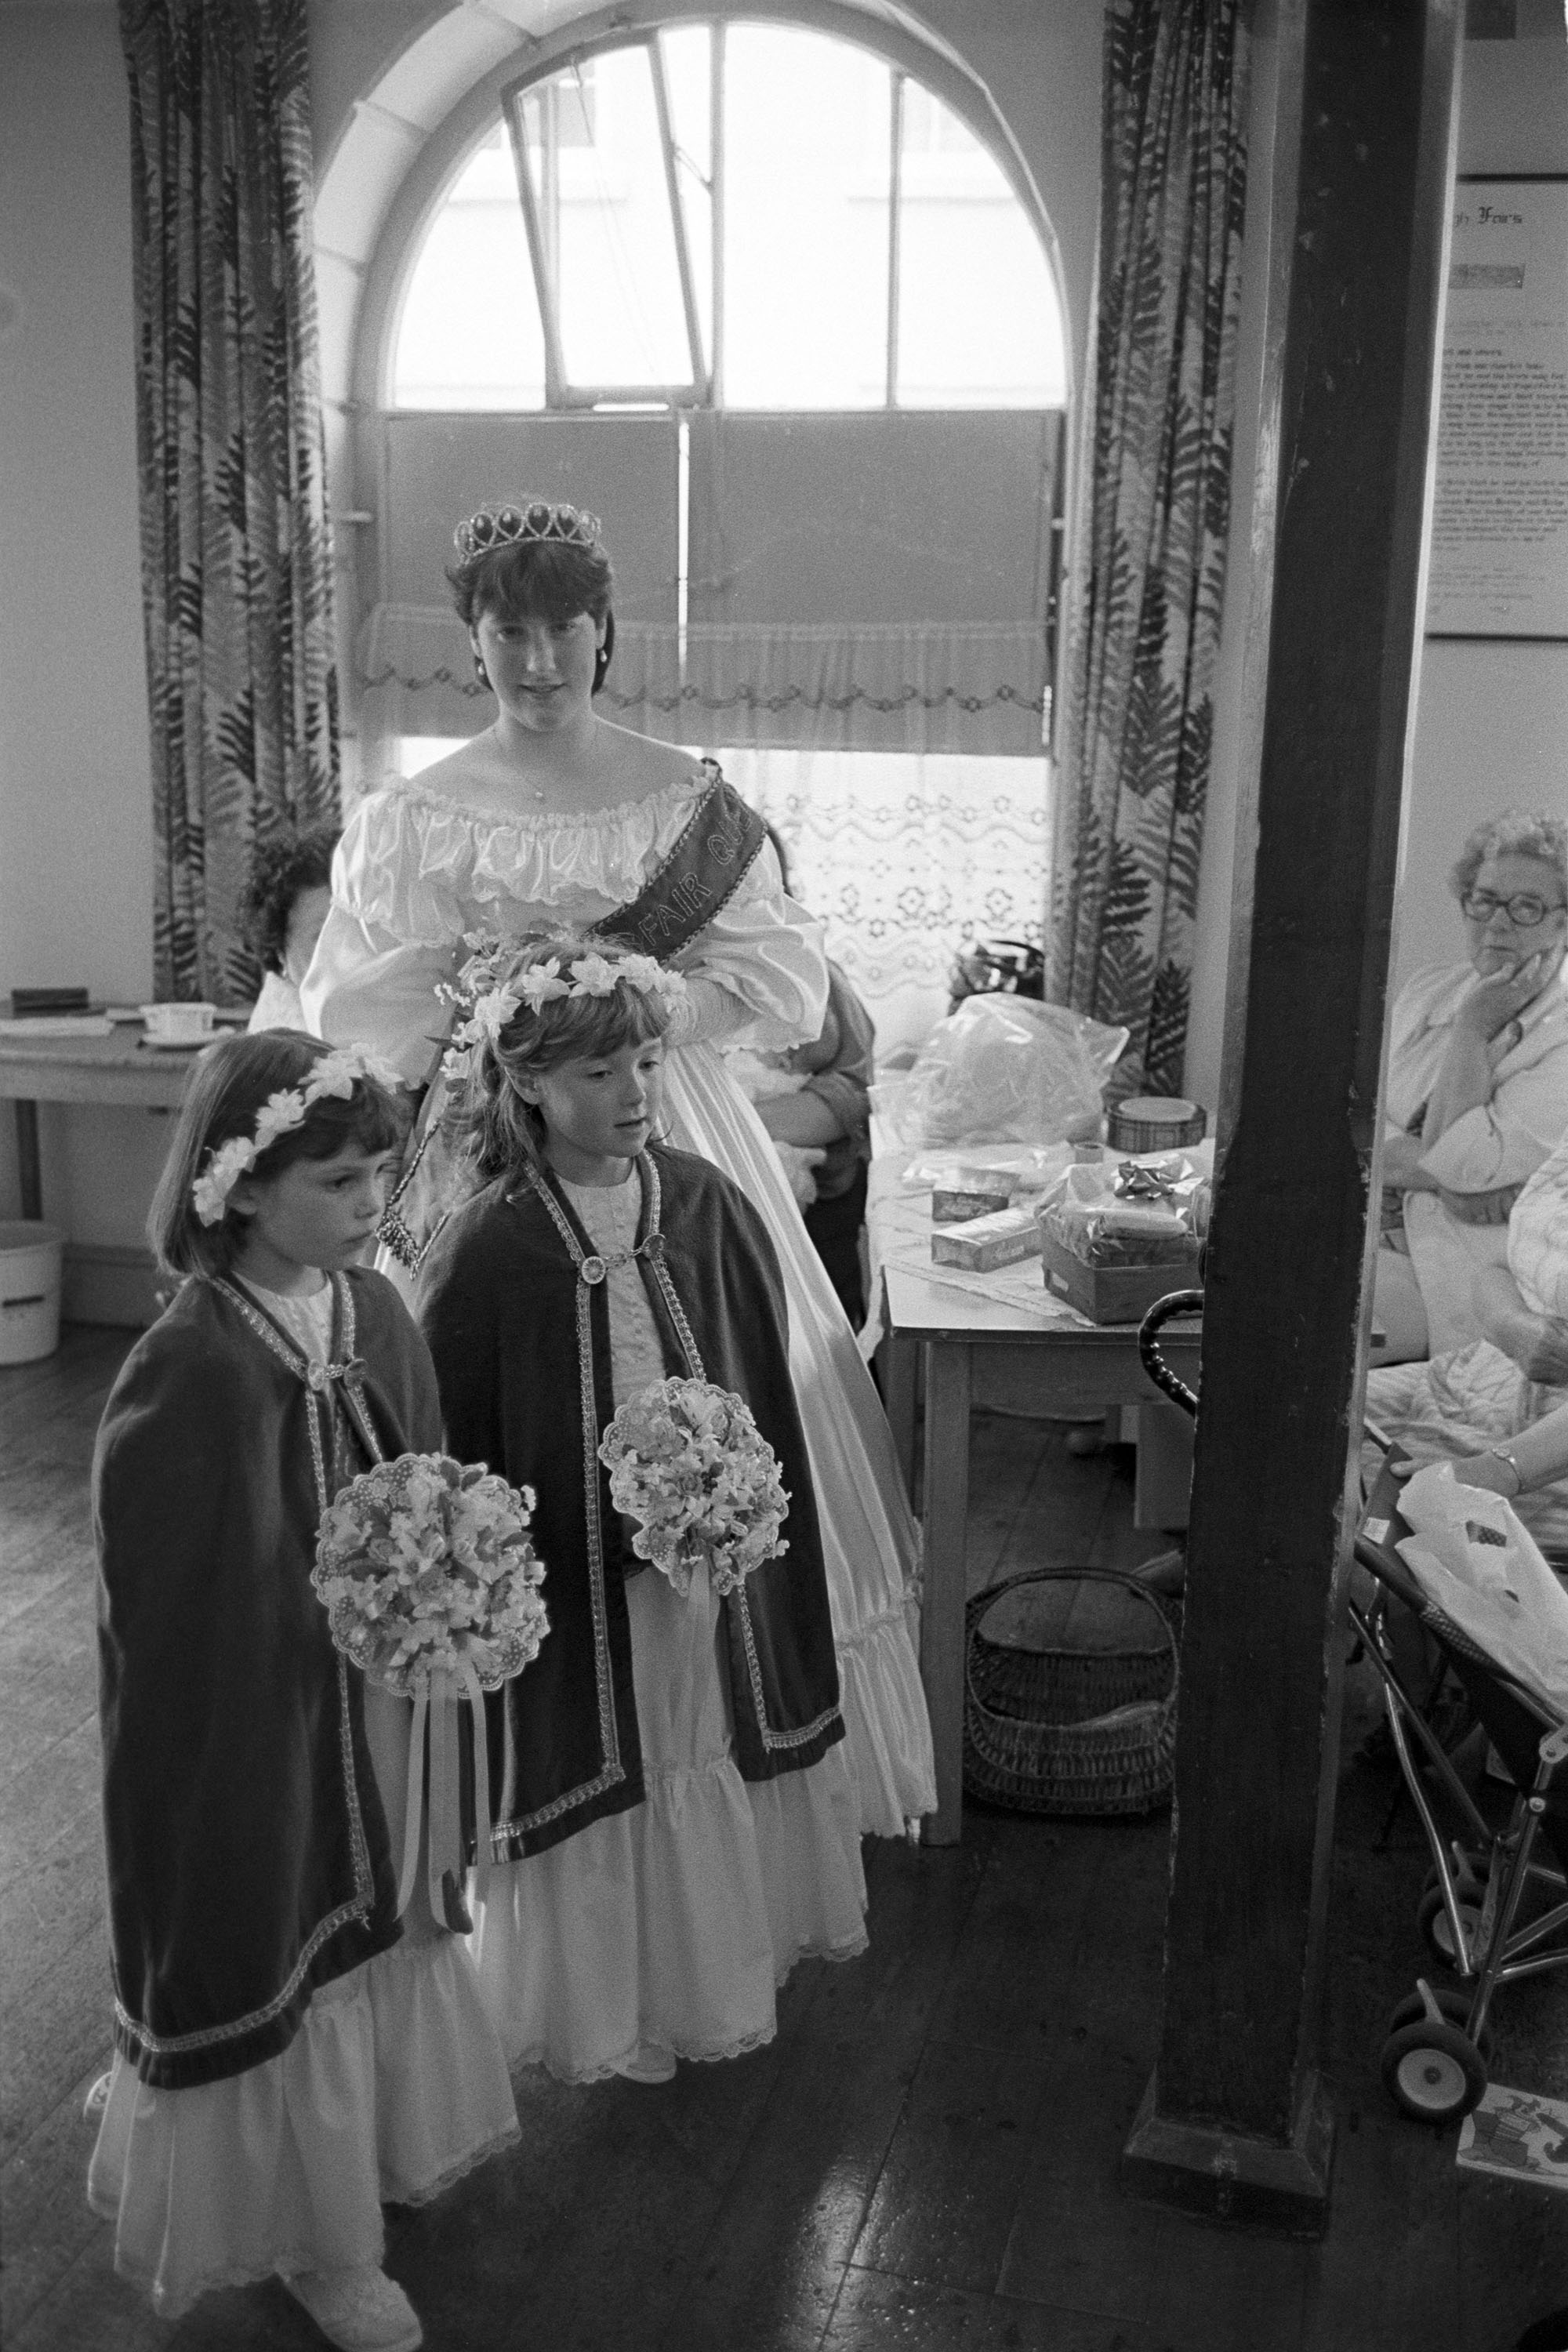 Fair Queen and attendants in town hall. <br /> [Emma Bending, Chulmleigh Fair Queen, with two attendants in Chulmleigh Town Hall before Chulmleigh Fair. They are all holding bouquets of flowers.]